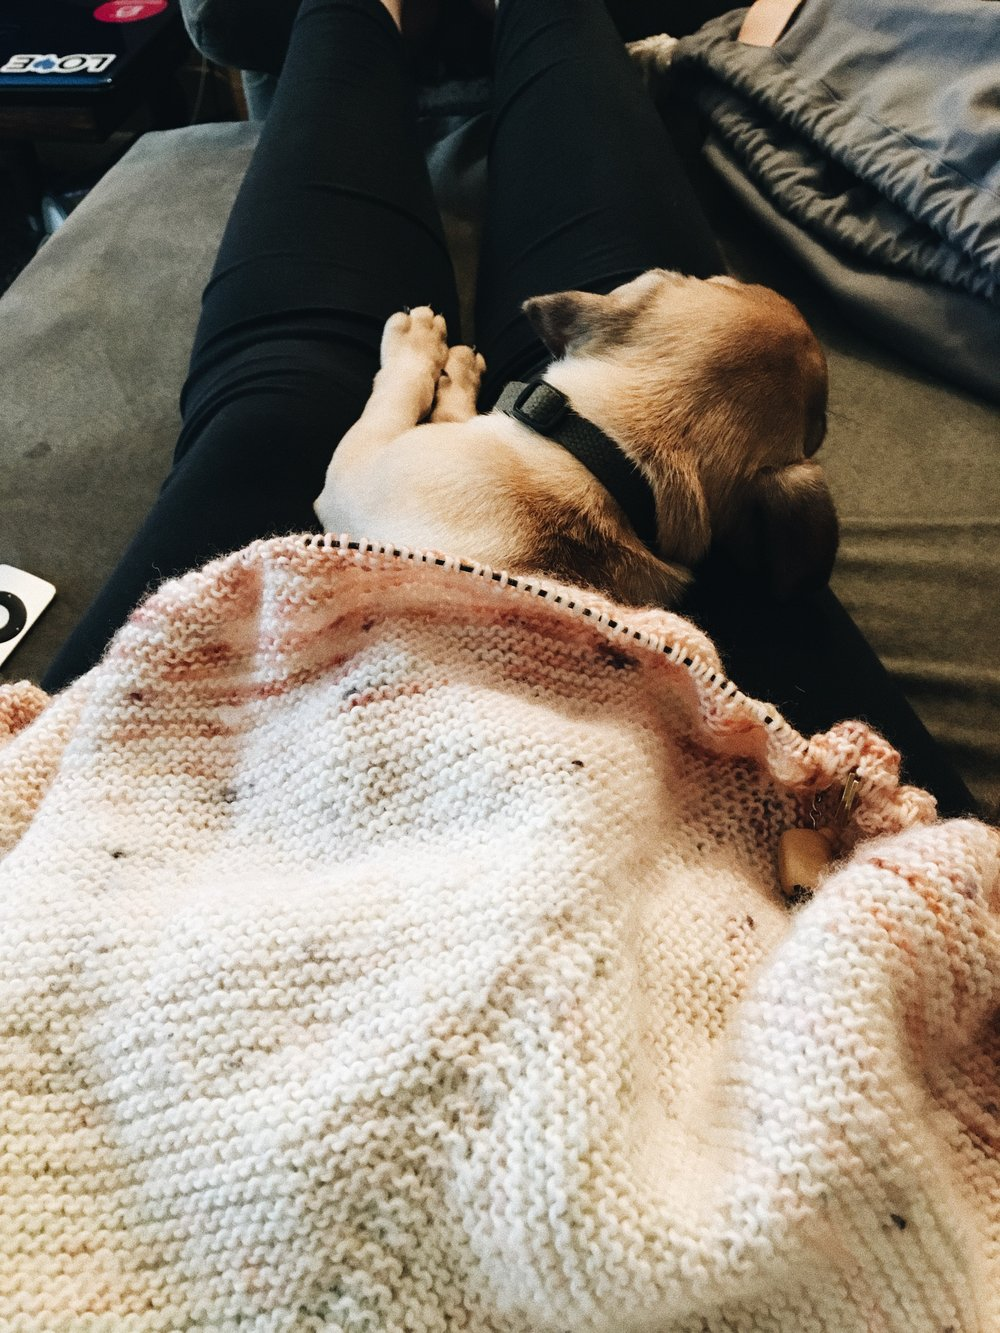 My happy place: Knitting on my What the Fade shawl by Andrea Mowry while my pup Esther sleeps in my lap.